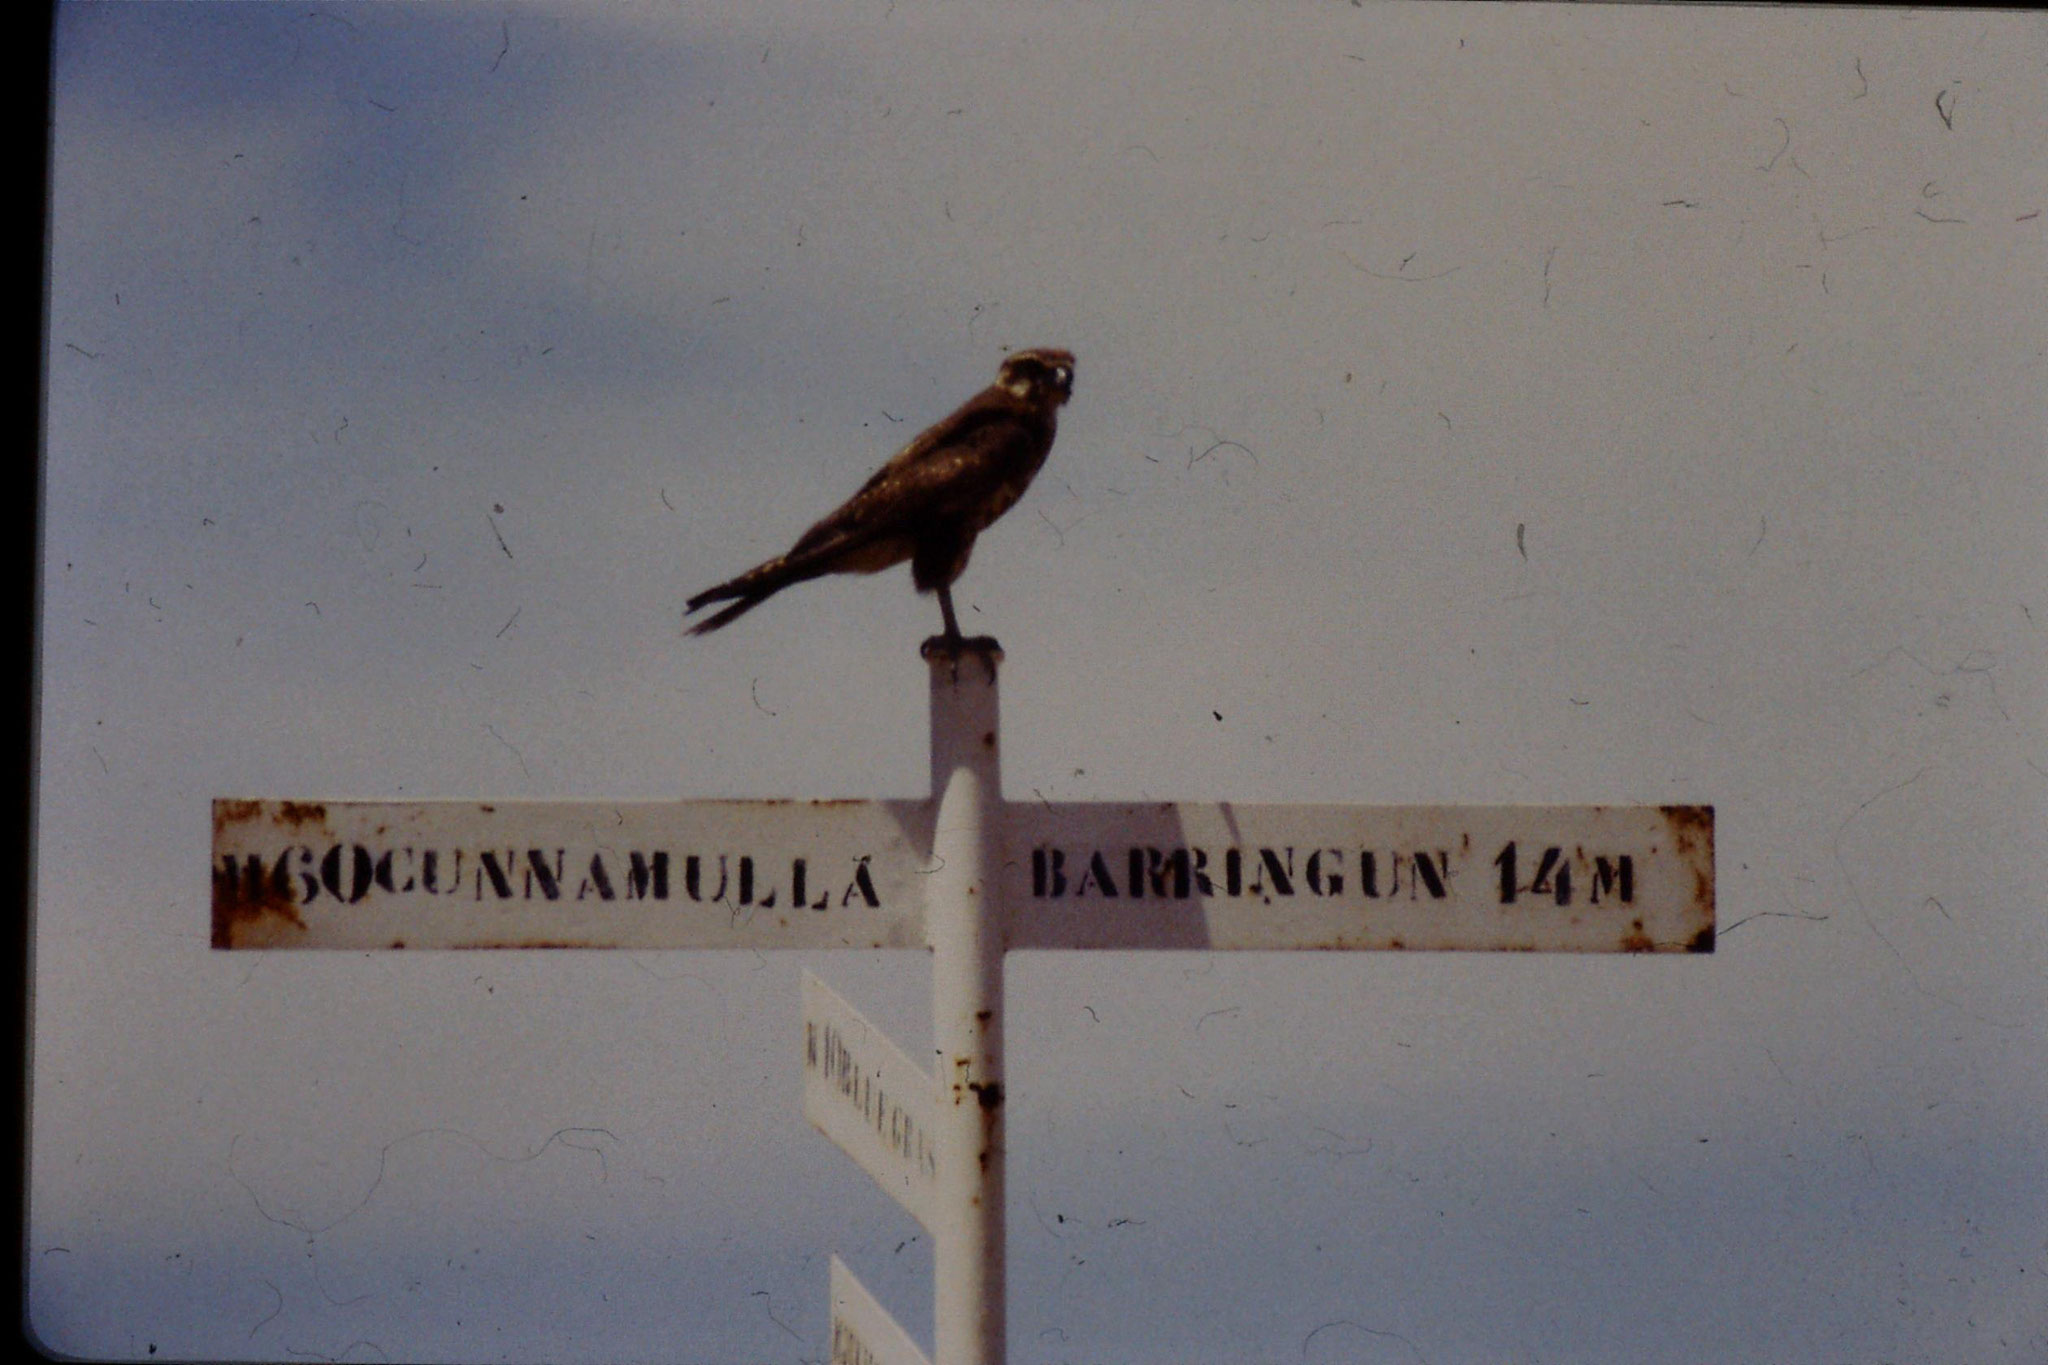 2/11/1990: 14: Brown falcon